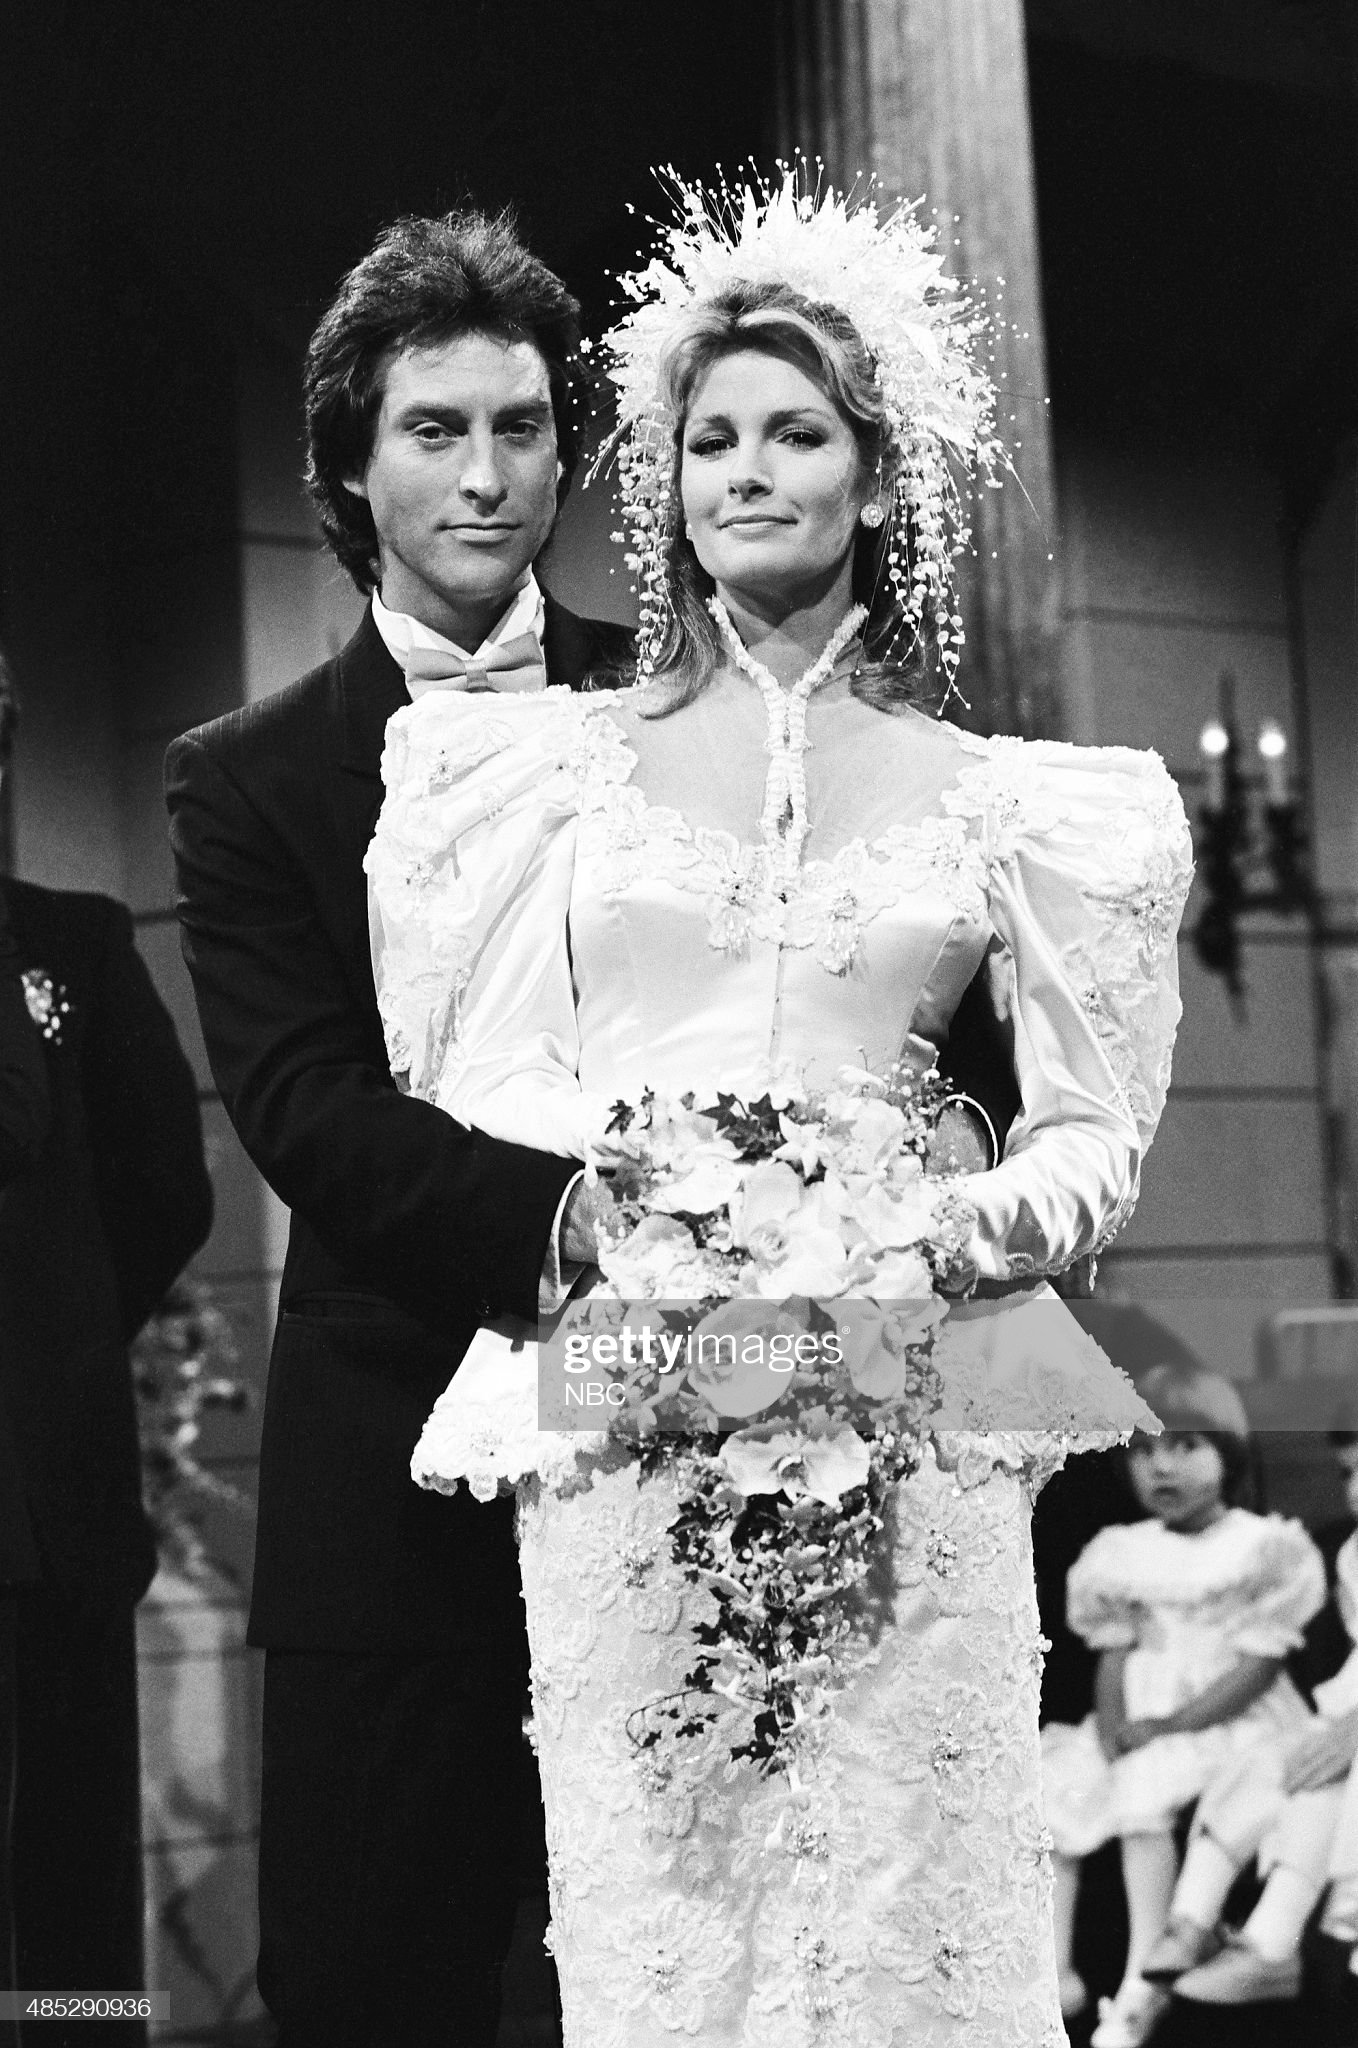 marlena-evans-roman-brady-wedding-pictured-drake-hogestyn-as-roman-picture-id485290936